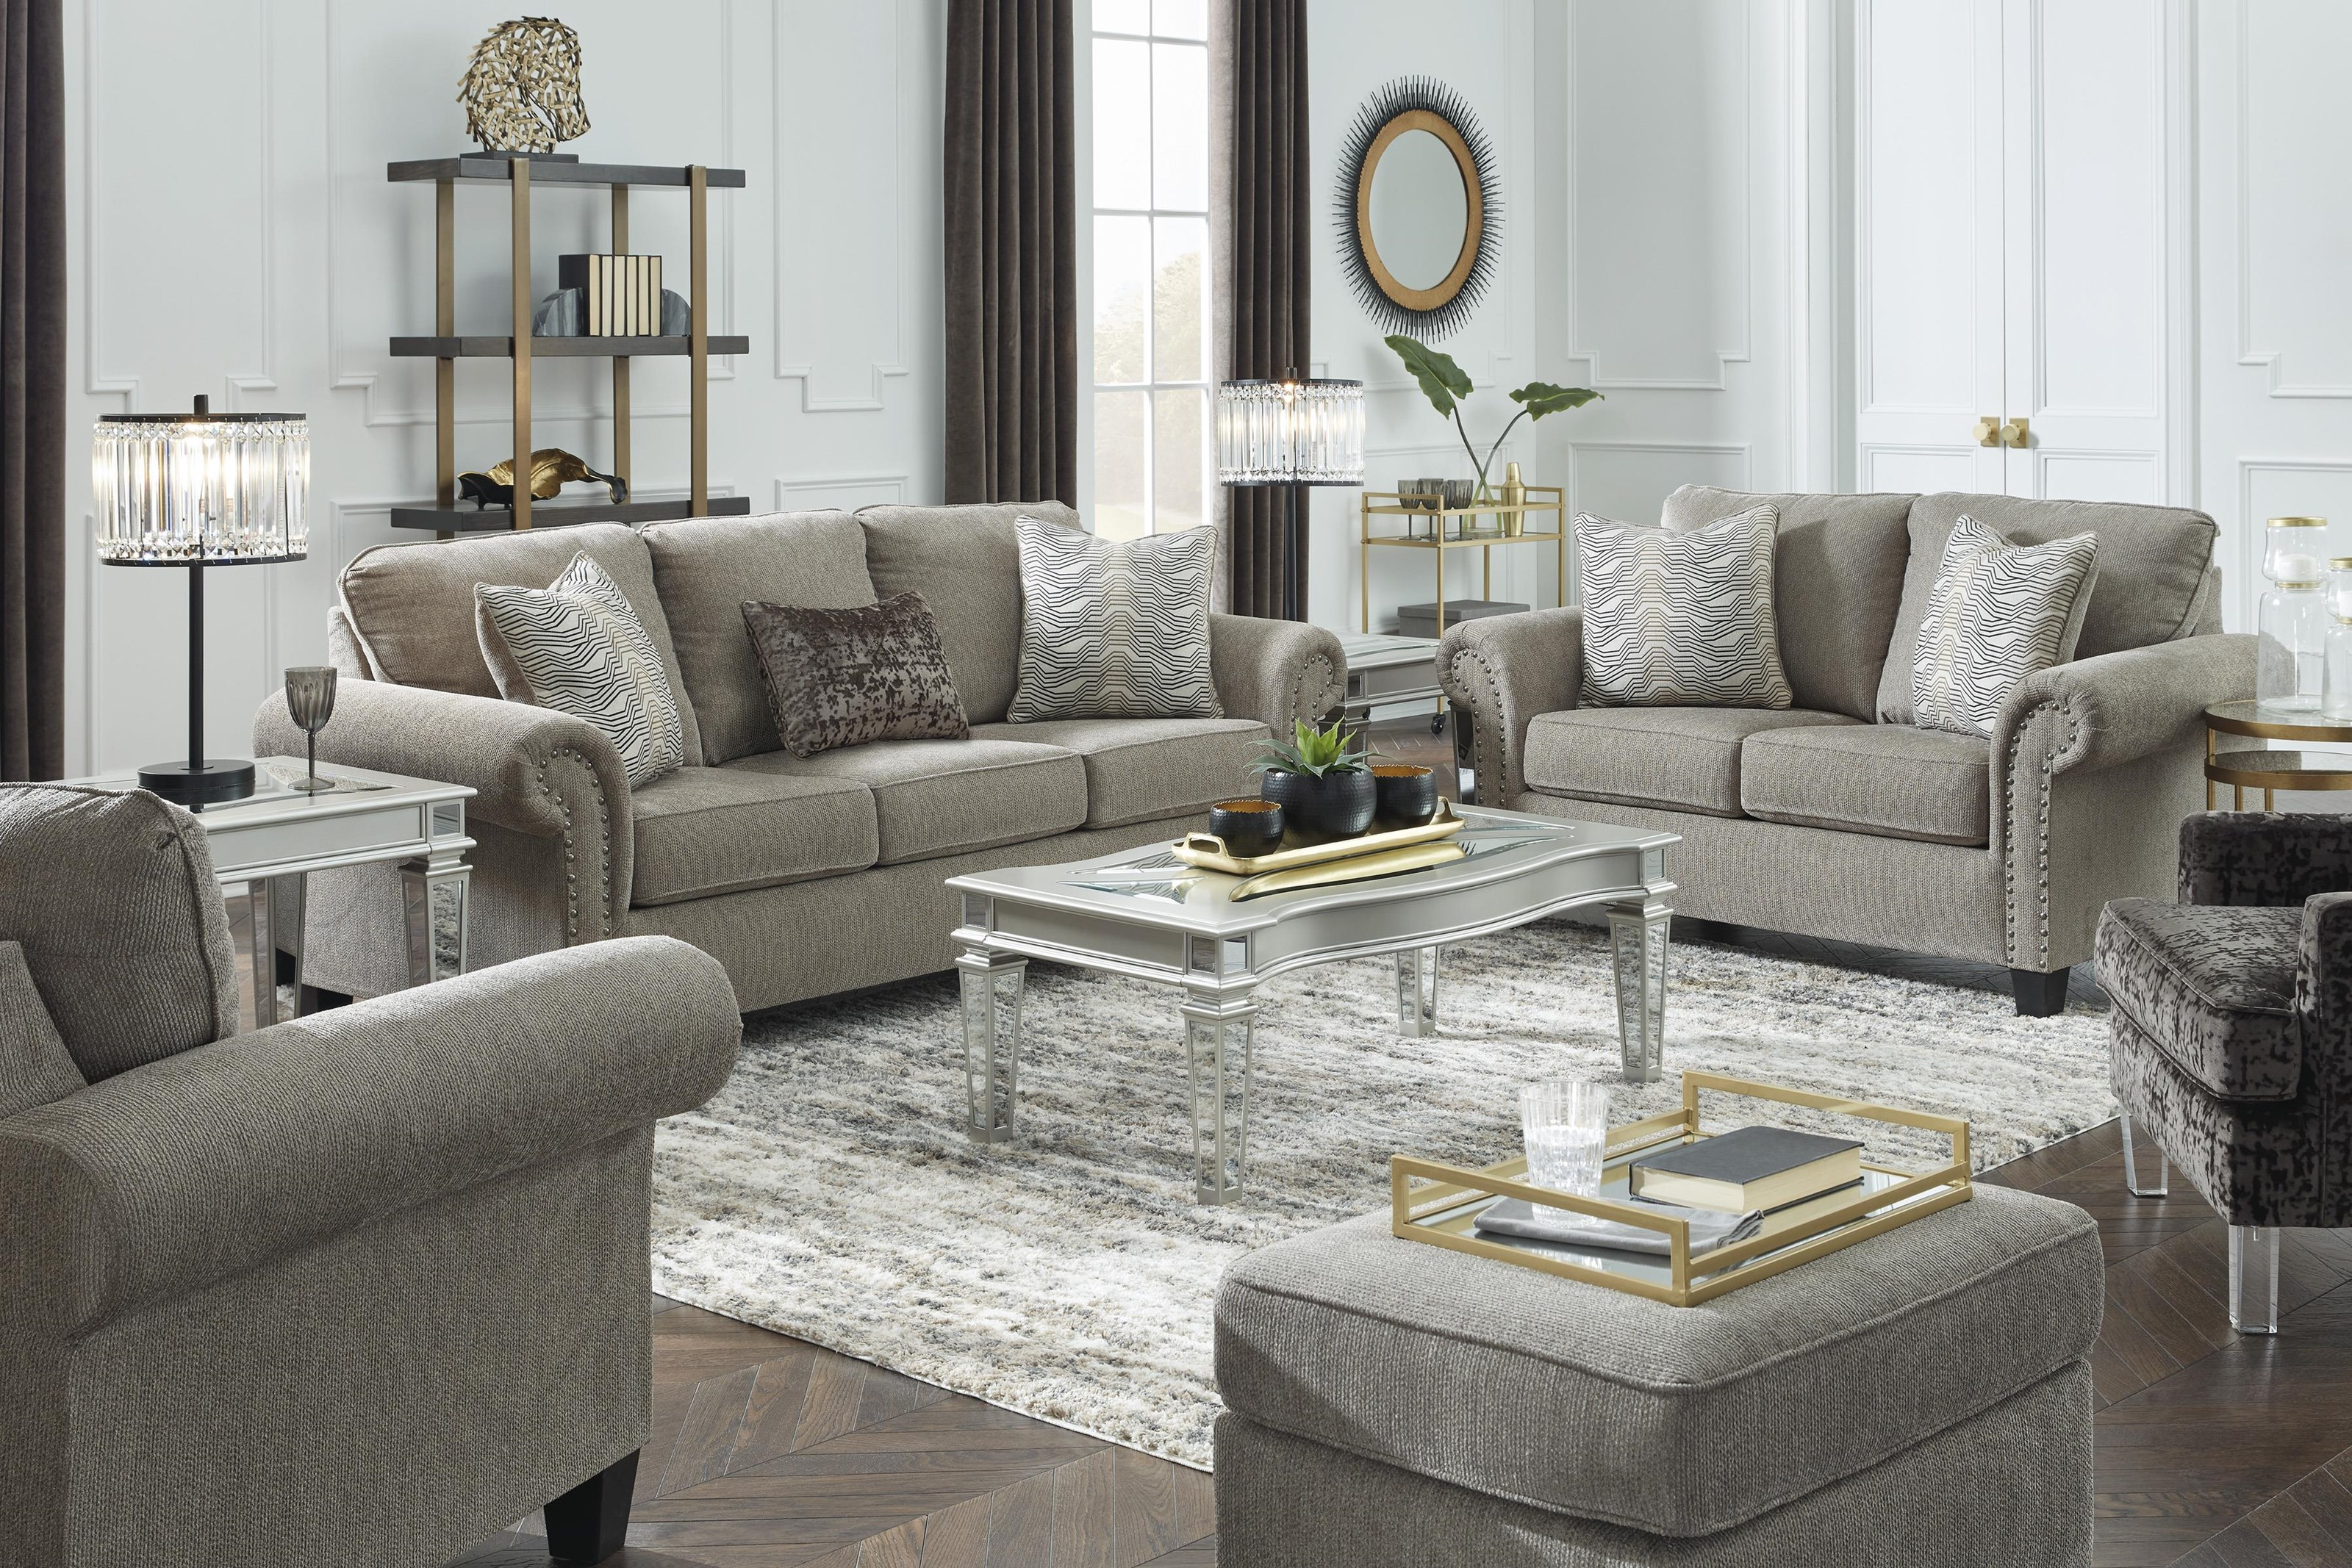 Shewsbury Sofa, Loveseat and Chair Set by Benchcraft at Sam Levitz Outlet